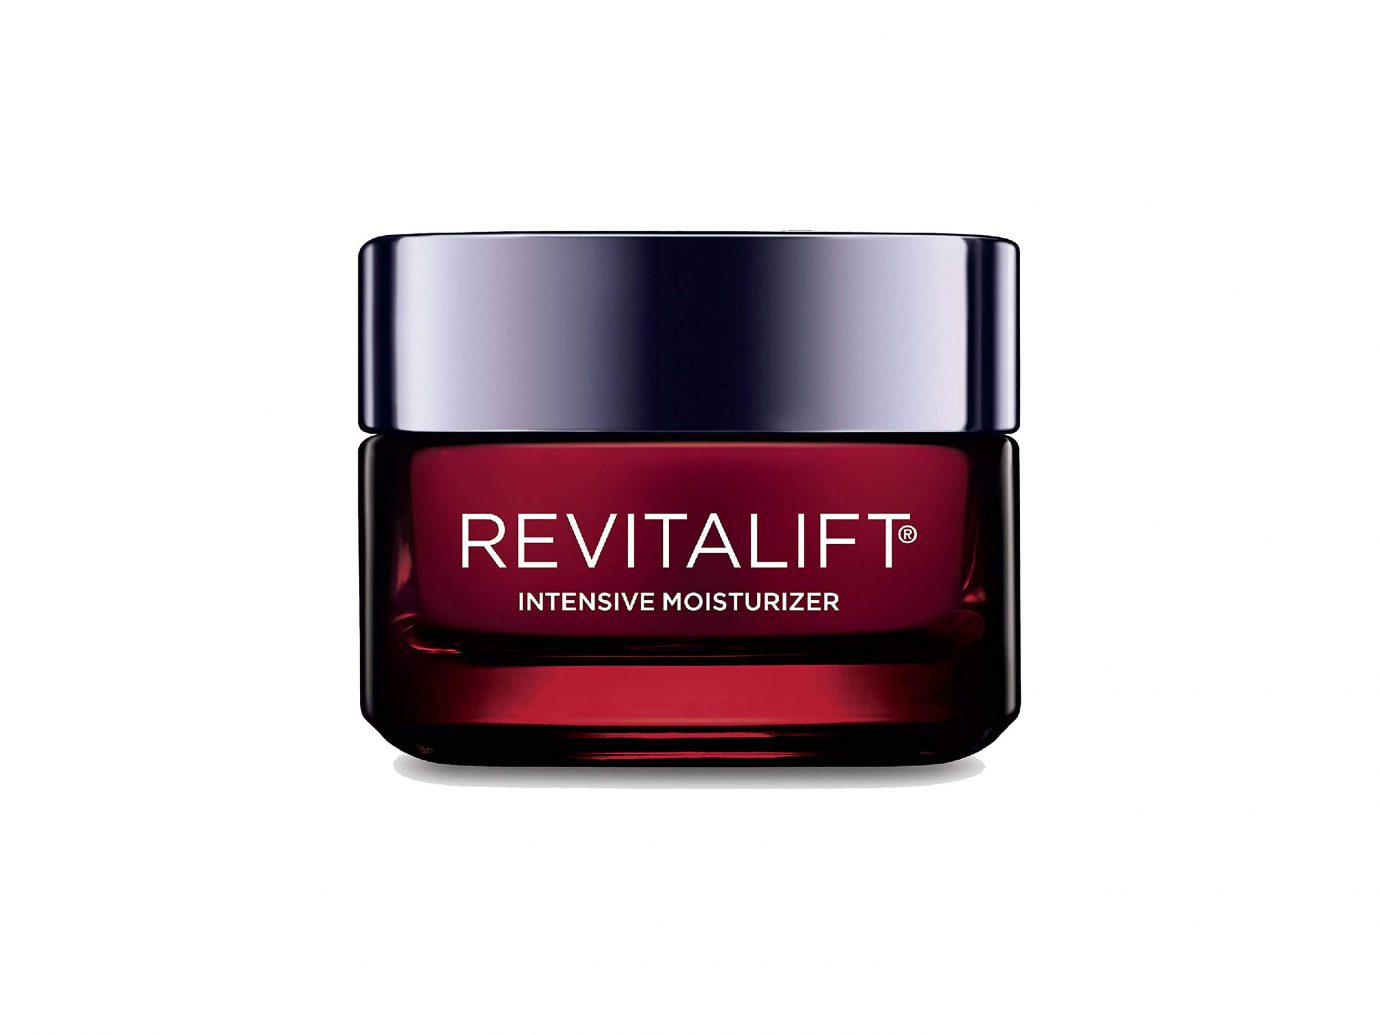 Face Moisturizer by L'Oreal Paris, Revitalift Triple Power Intensive Day Cream with Hyaluronic Acid for Visibly Reduced Wrinkles and Firm Skin